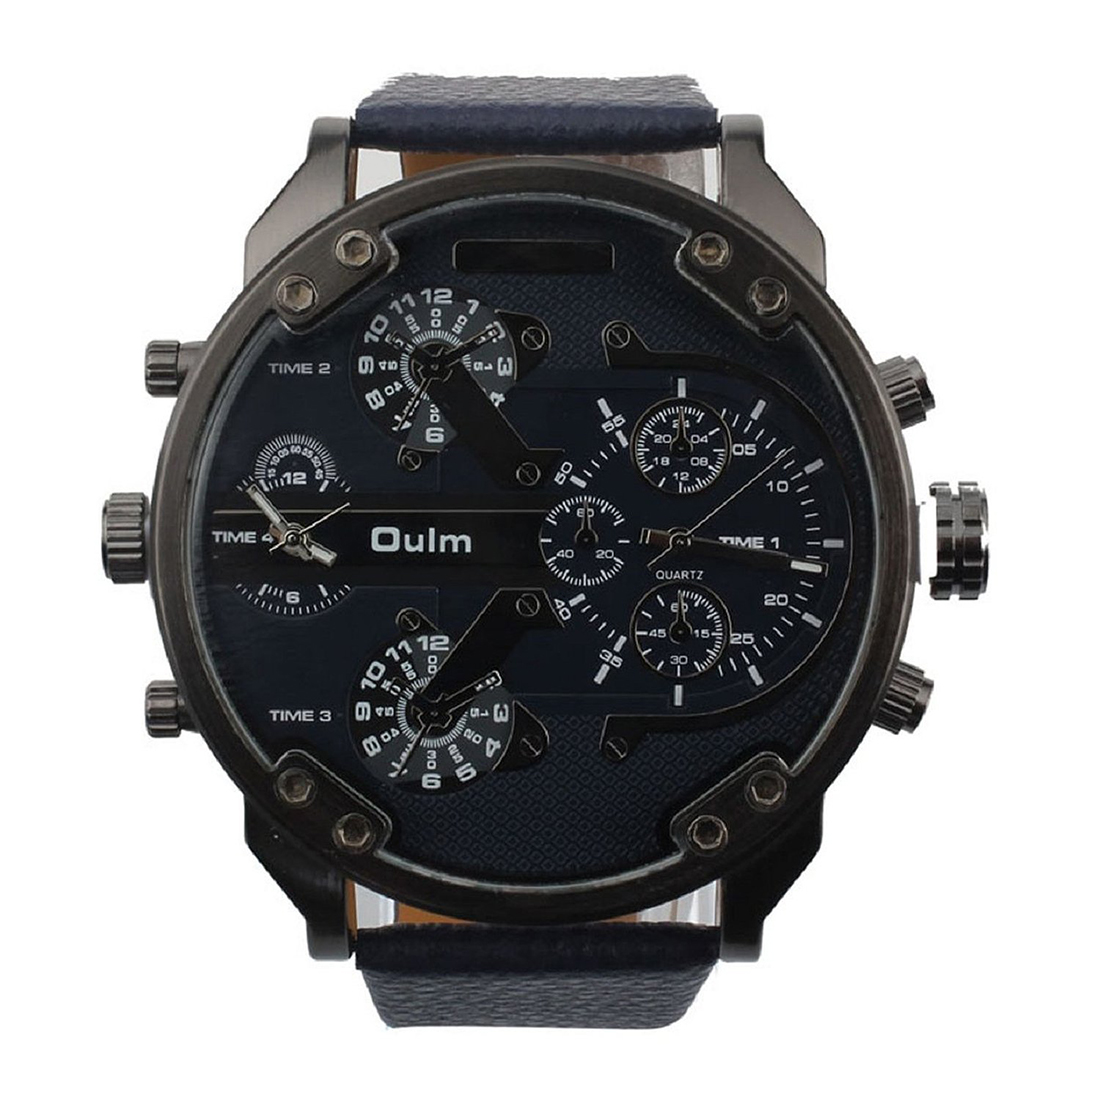 Practical OULM Men Luxury Army Army Dual Time Quartz Large Dial Wrist Watch buck open season caper b0542bks